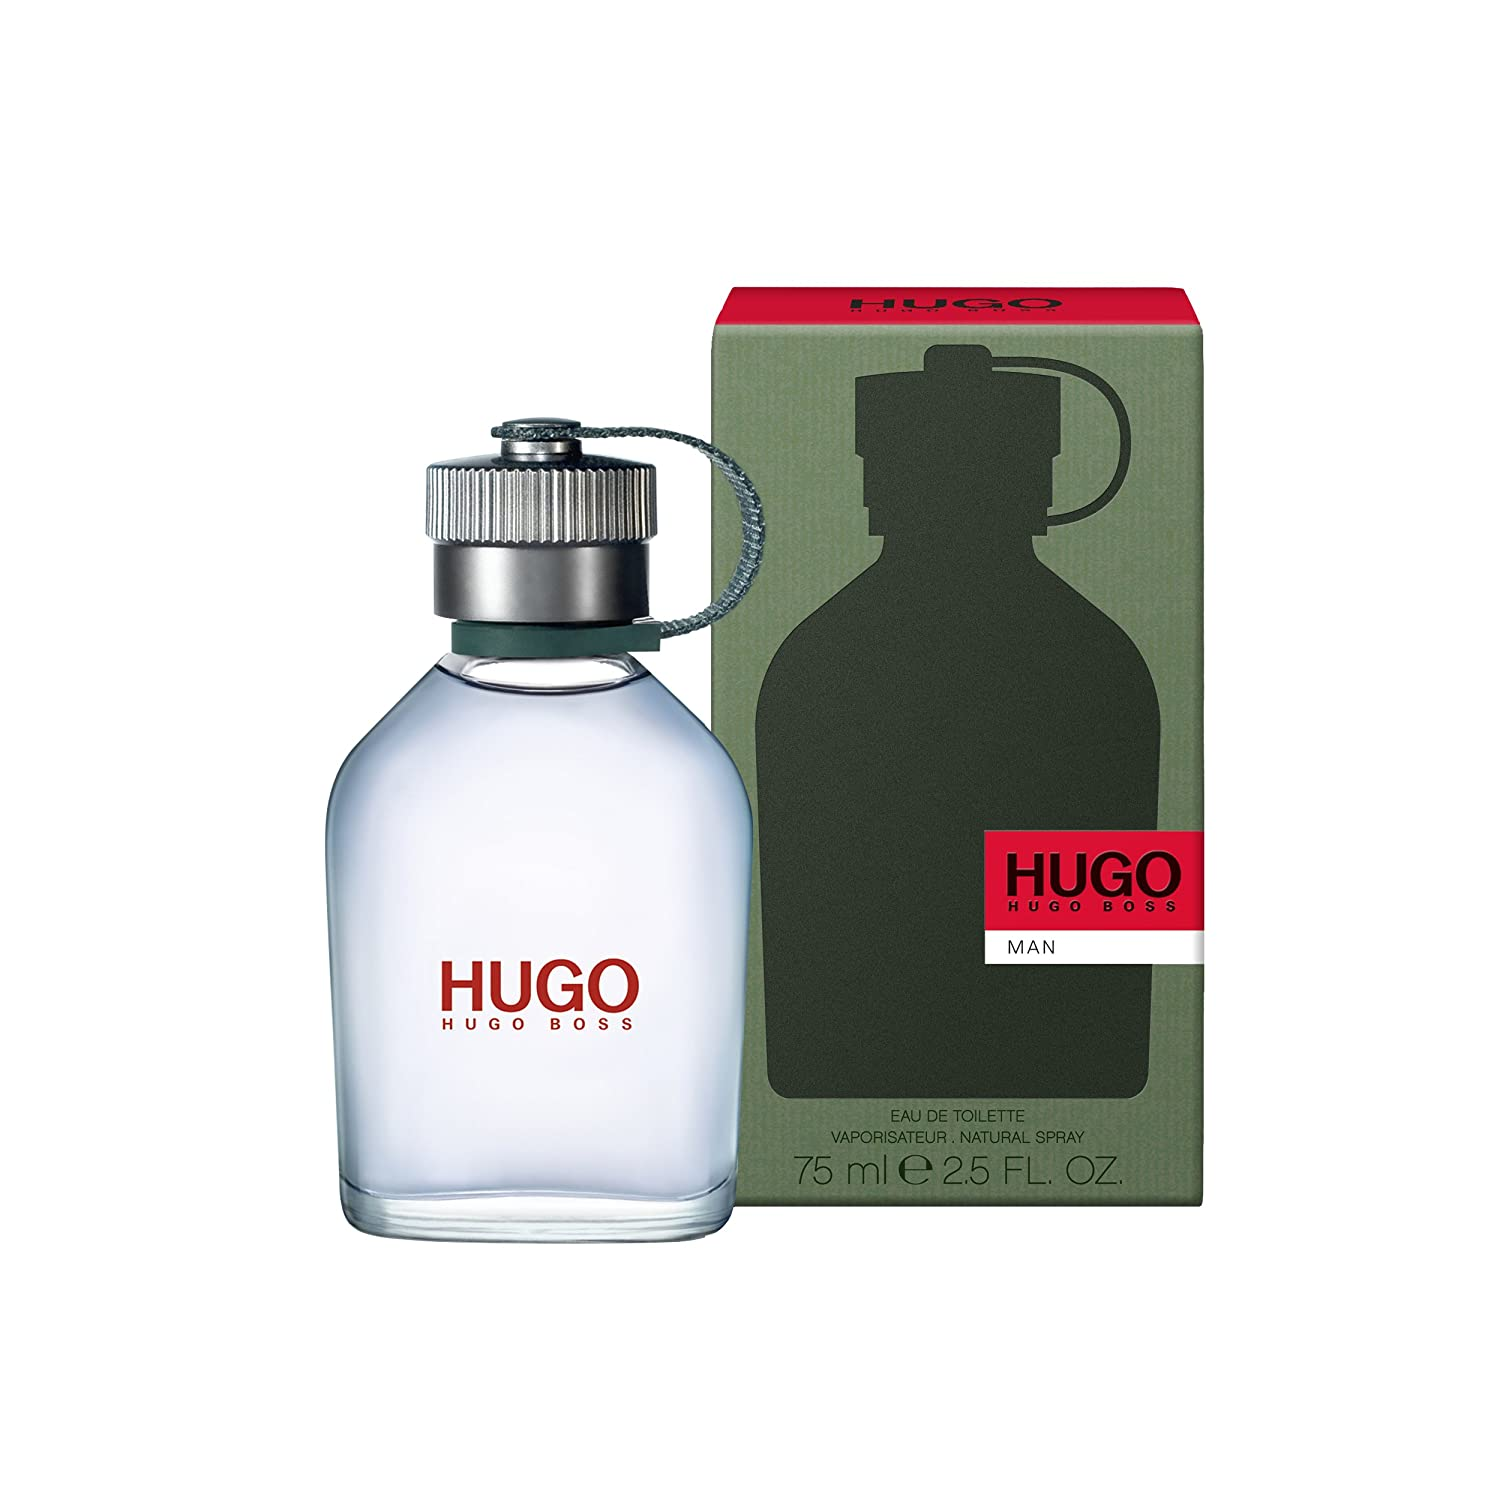 9c02ae1181 Amazon.com: Hugo Boss MAN Eau de Toilette, 2.5 Fl Oz: Luxury Beauty